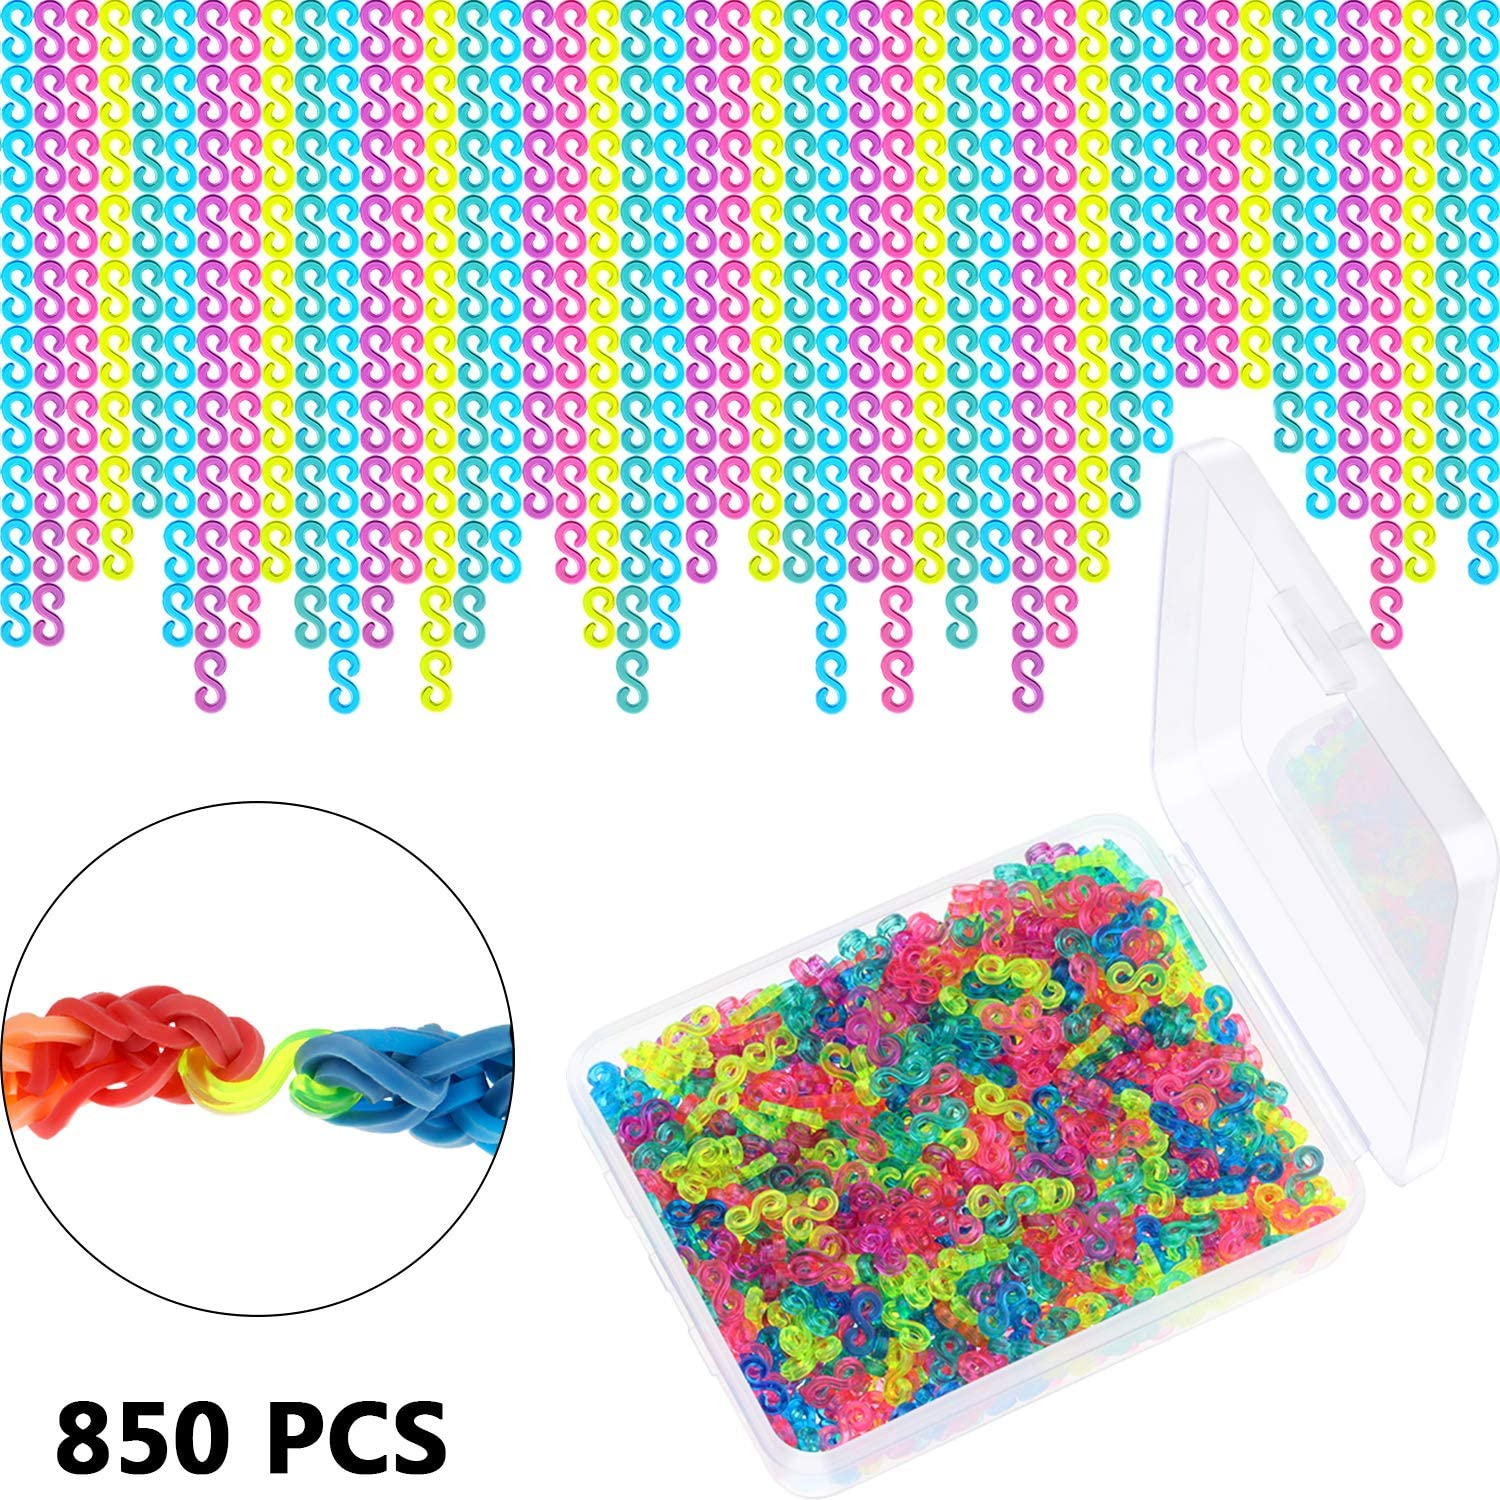 Clear 850 Pieces S Clips Rubber Band Clips Loom Band Clips Bracelet Loom Kit Clips for Crafts Making